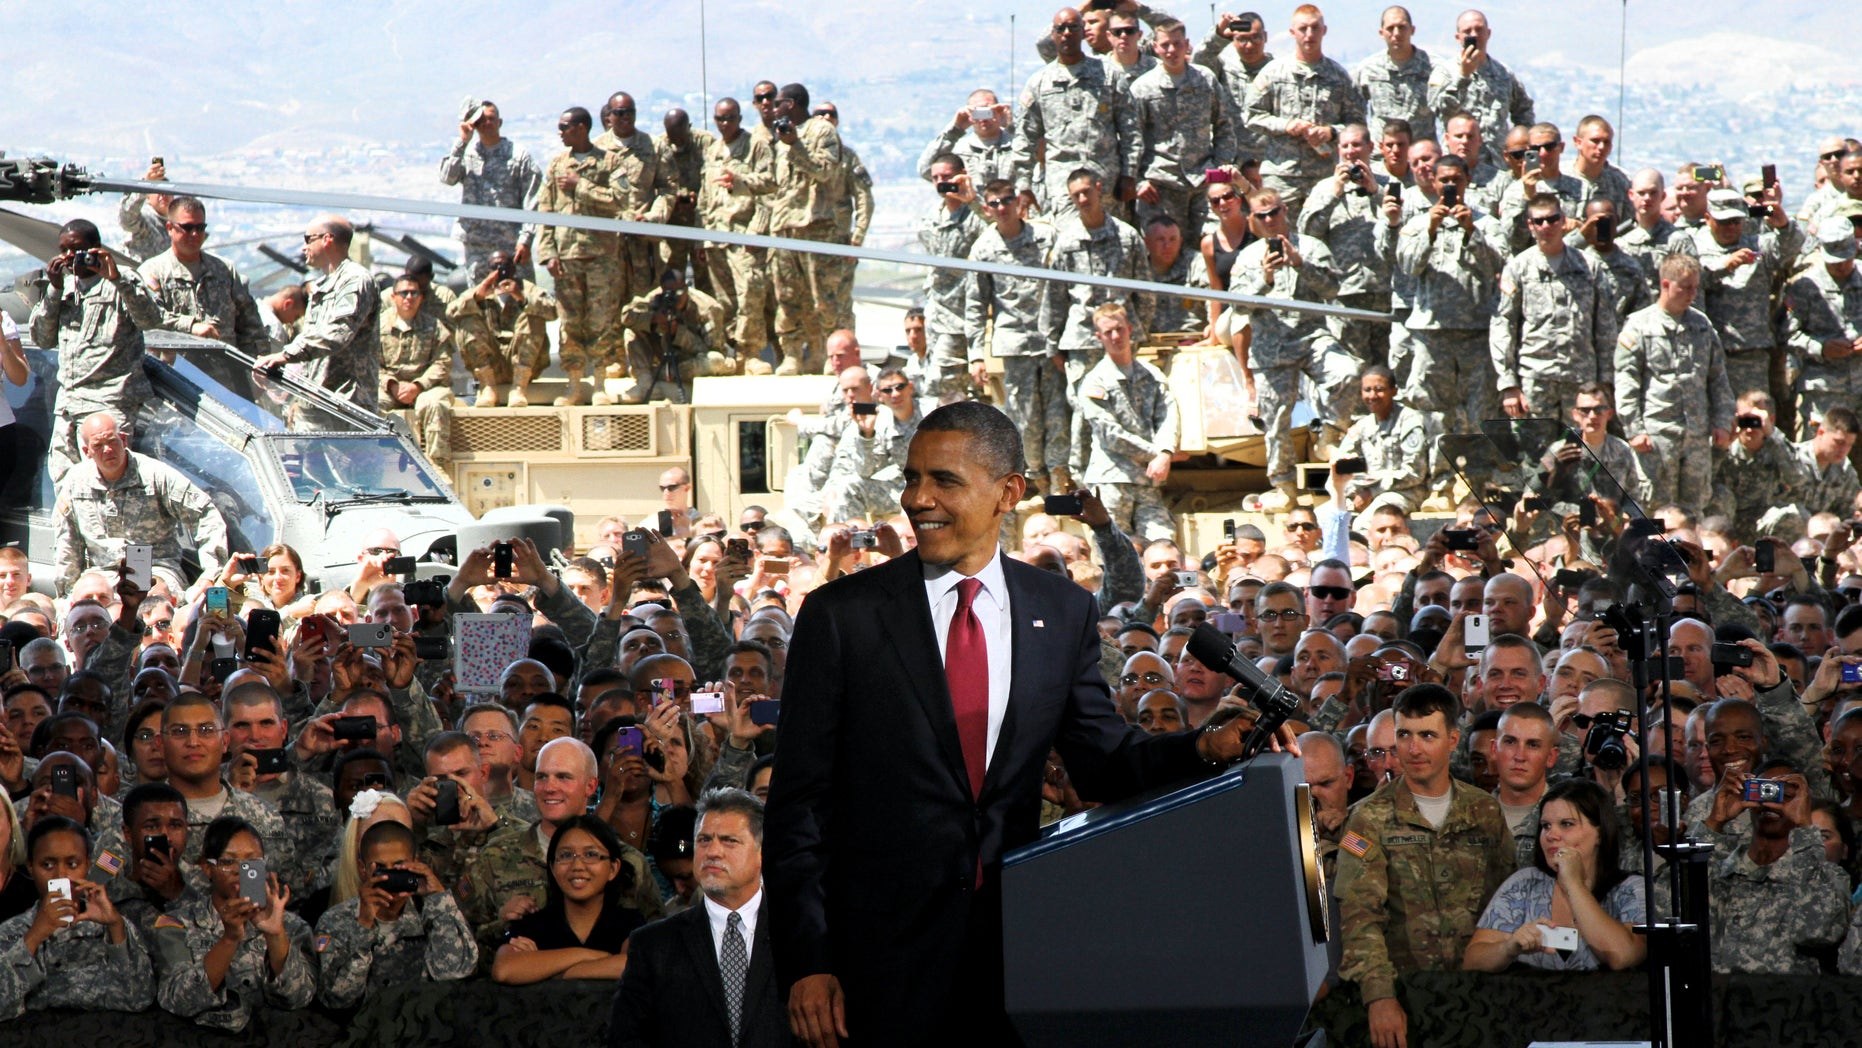 Aug. 31, 2012: President Obama speaks to troops, service members and military families at the 1st Aviation Support Battalion Hangar at Fort Bliss in El Paso, Texas.